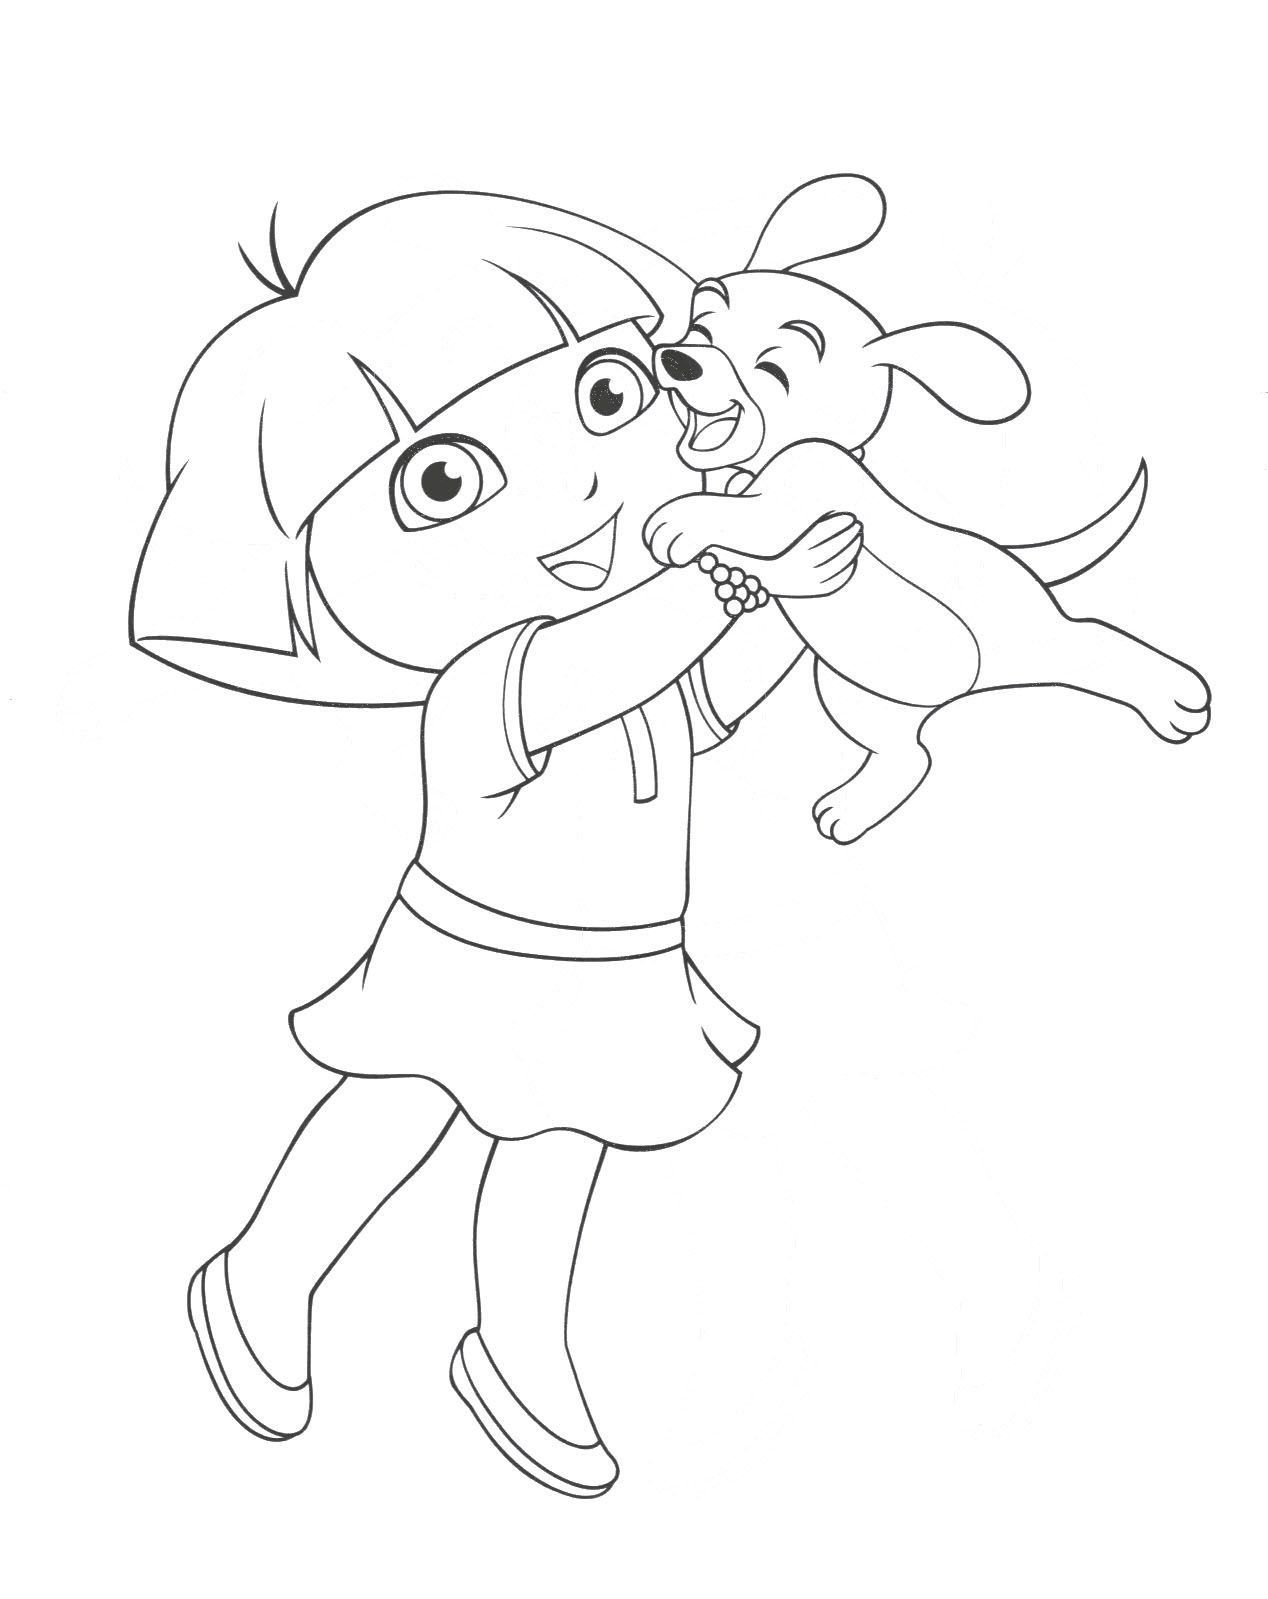 Dora Was Playing With Pet Animals Coloring Page